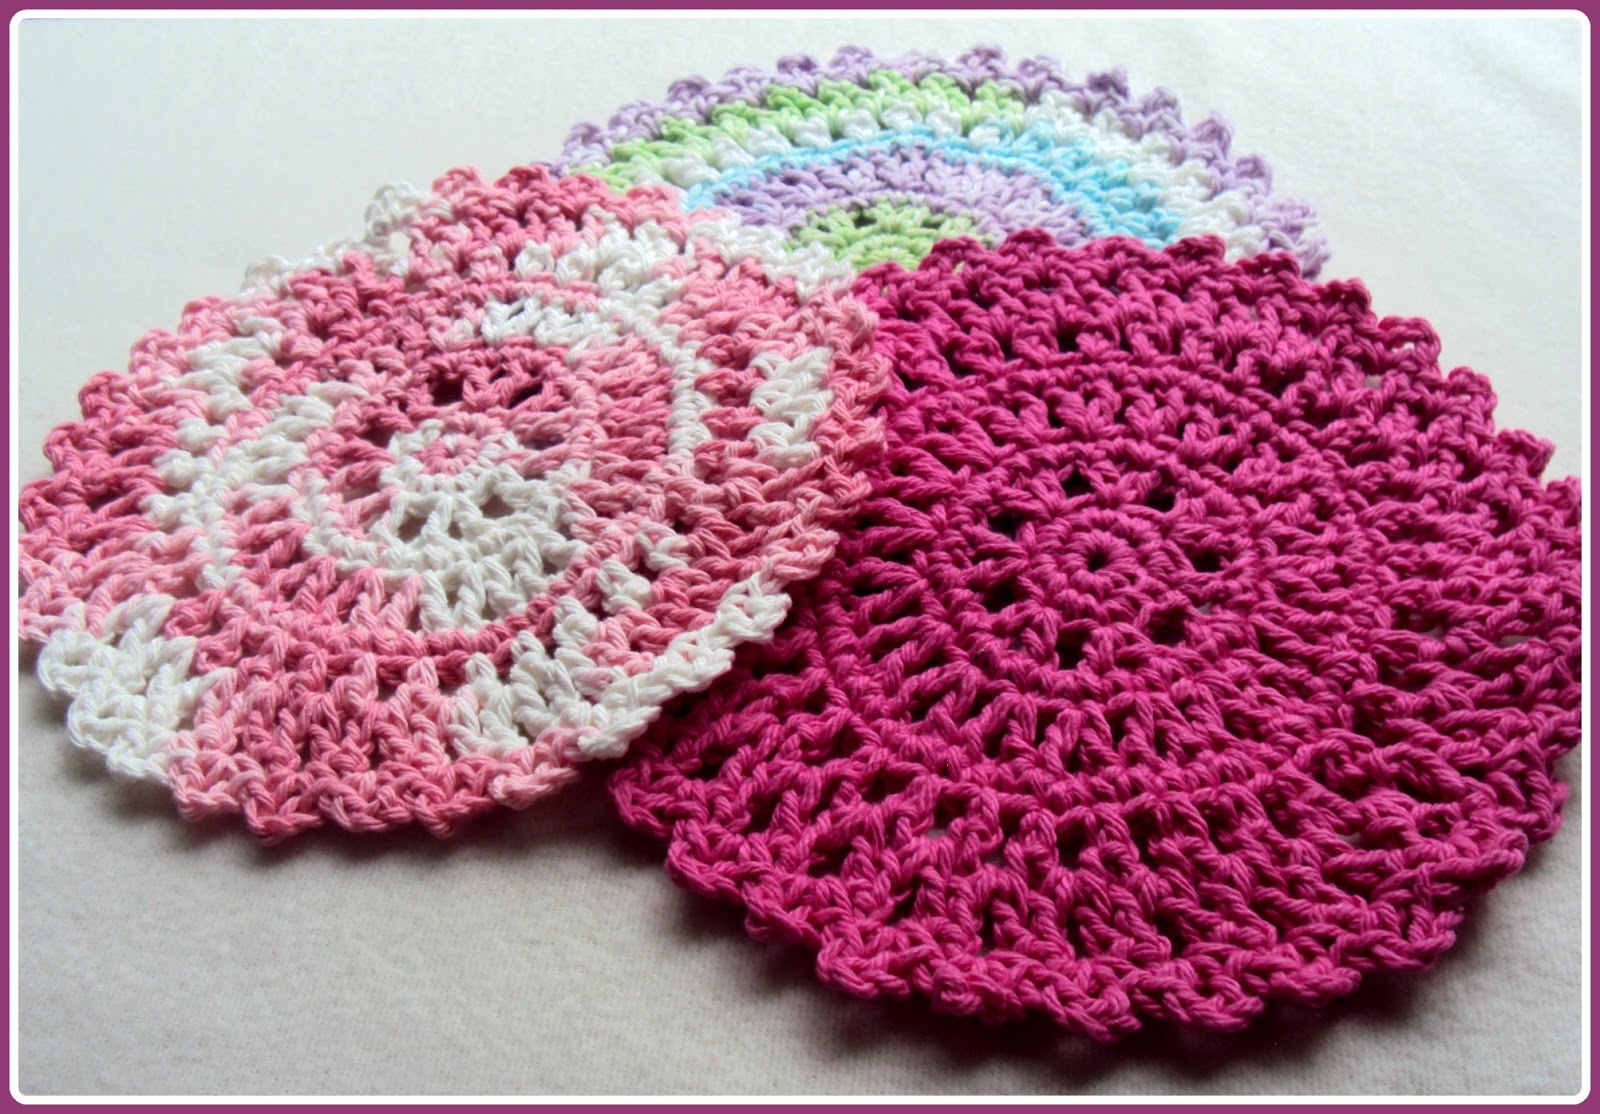 Crochet Patterns Cotton Yarn : ... up quickly and beautifully when using both acrylic or cotton yarns